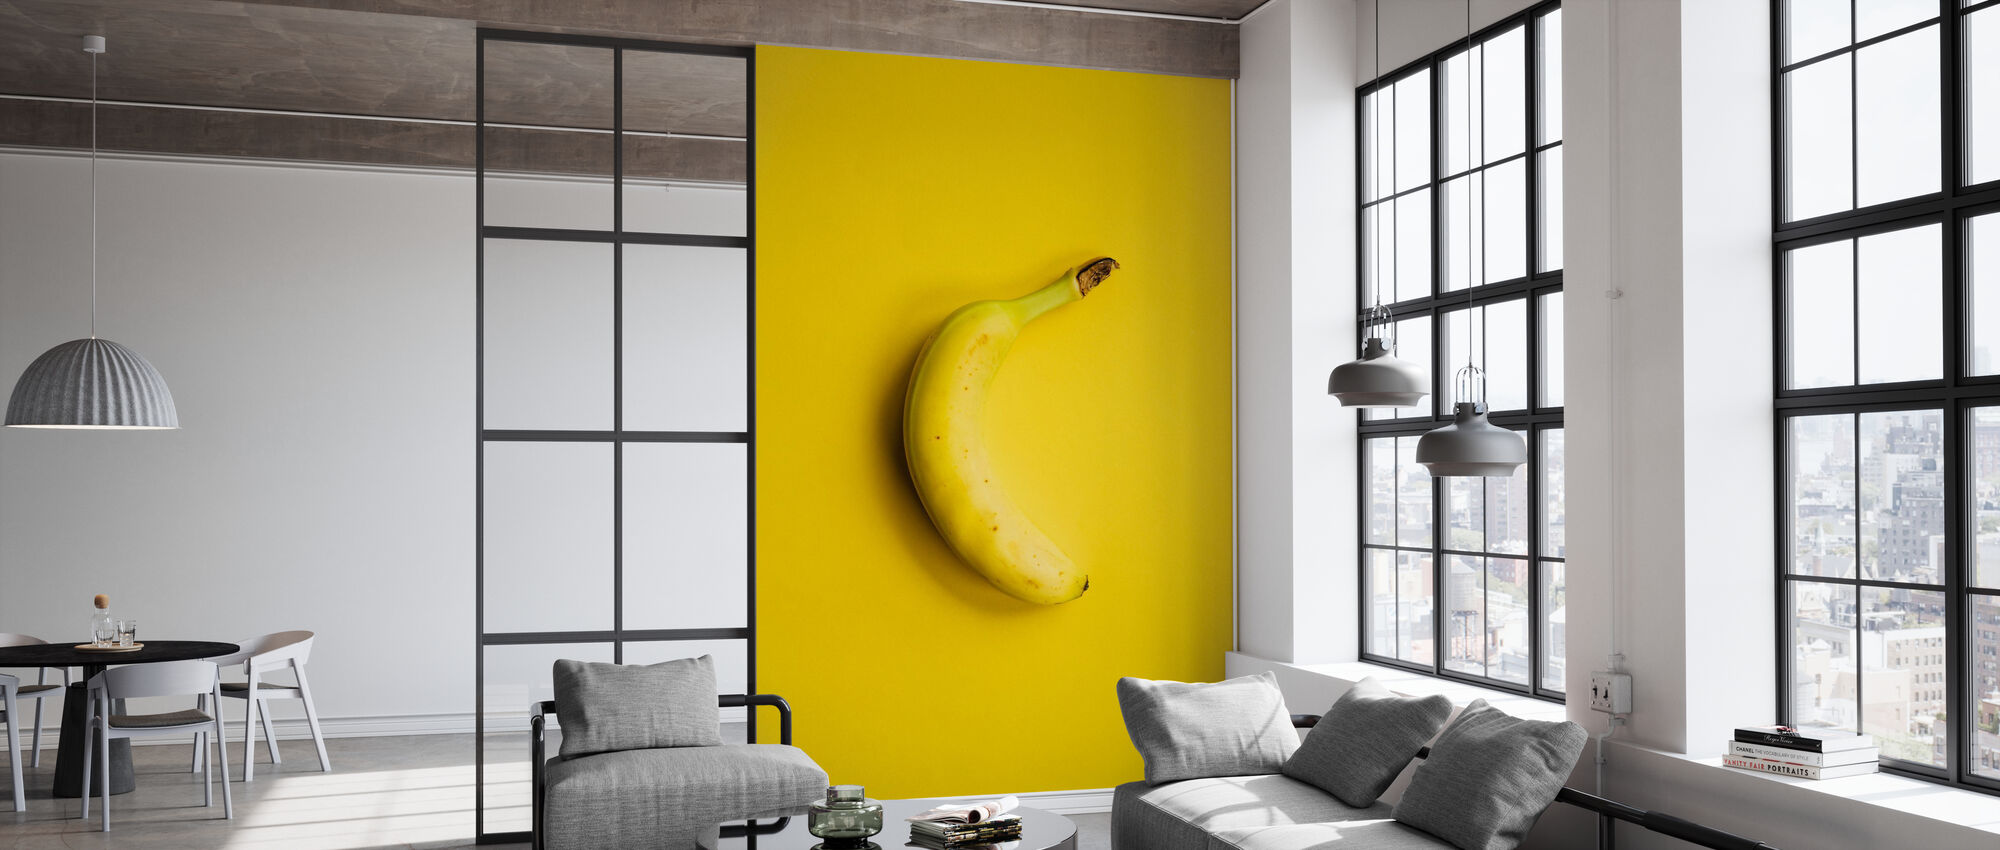 Yellow Banana - Wallpaper - Office